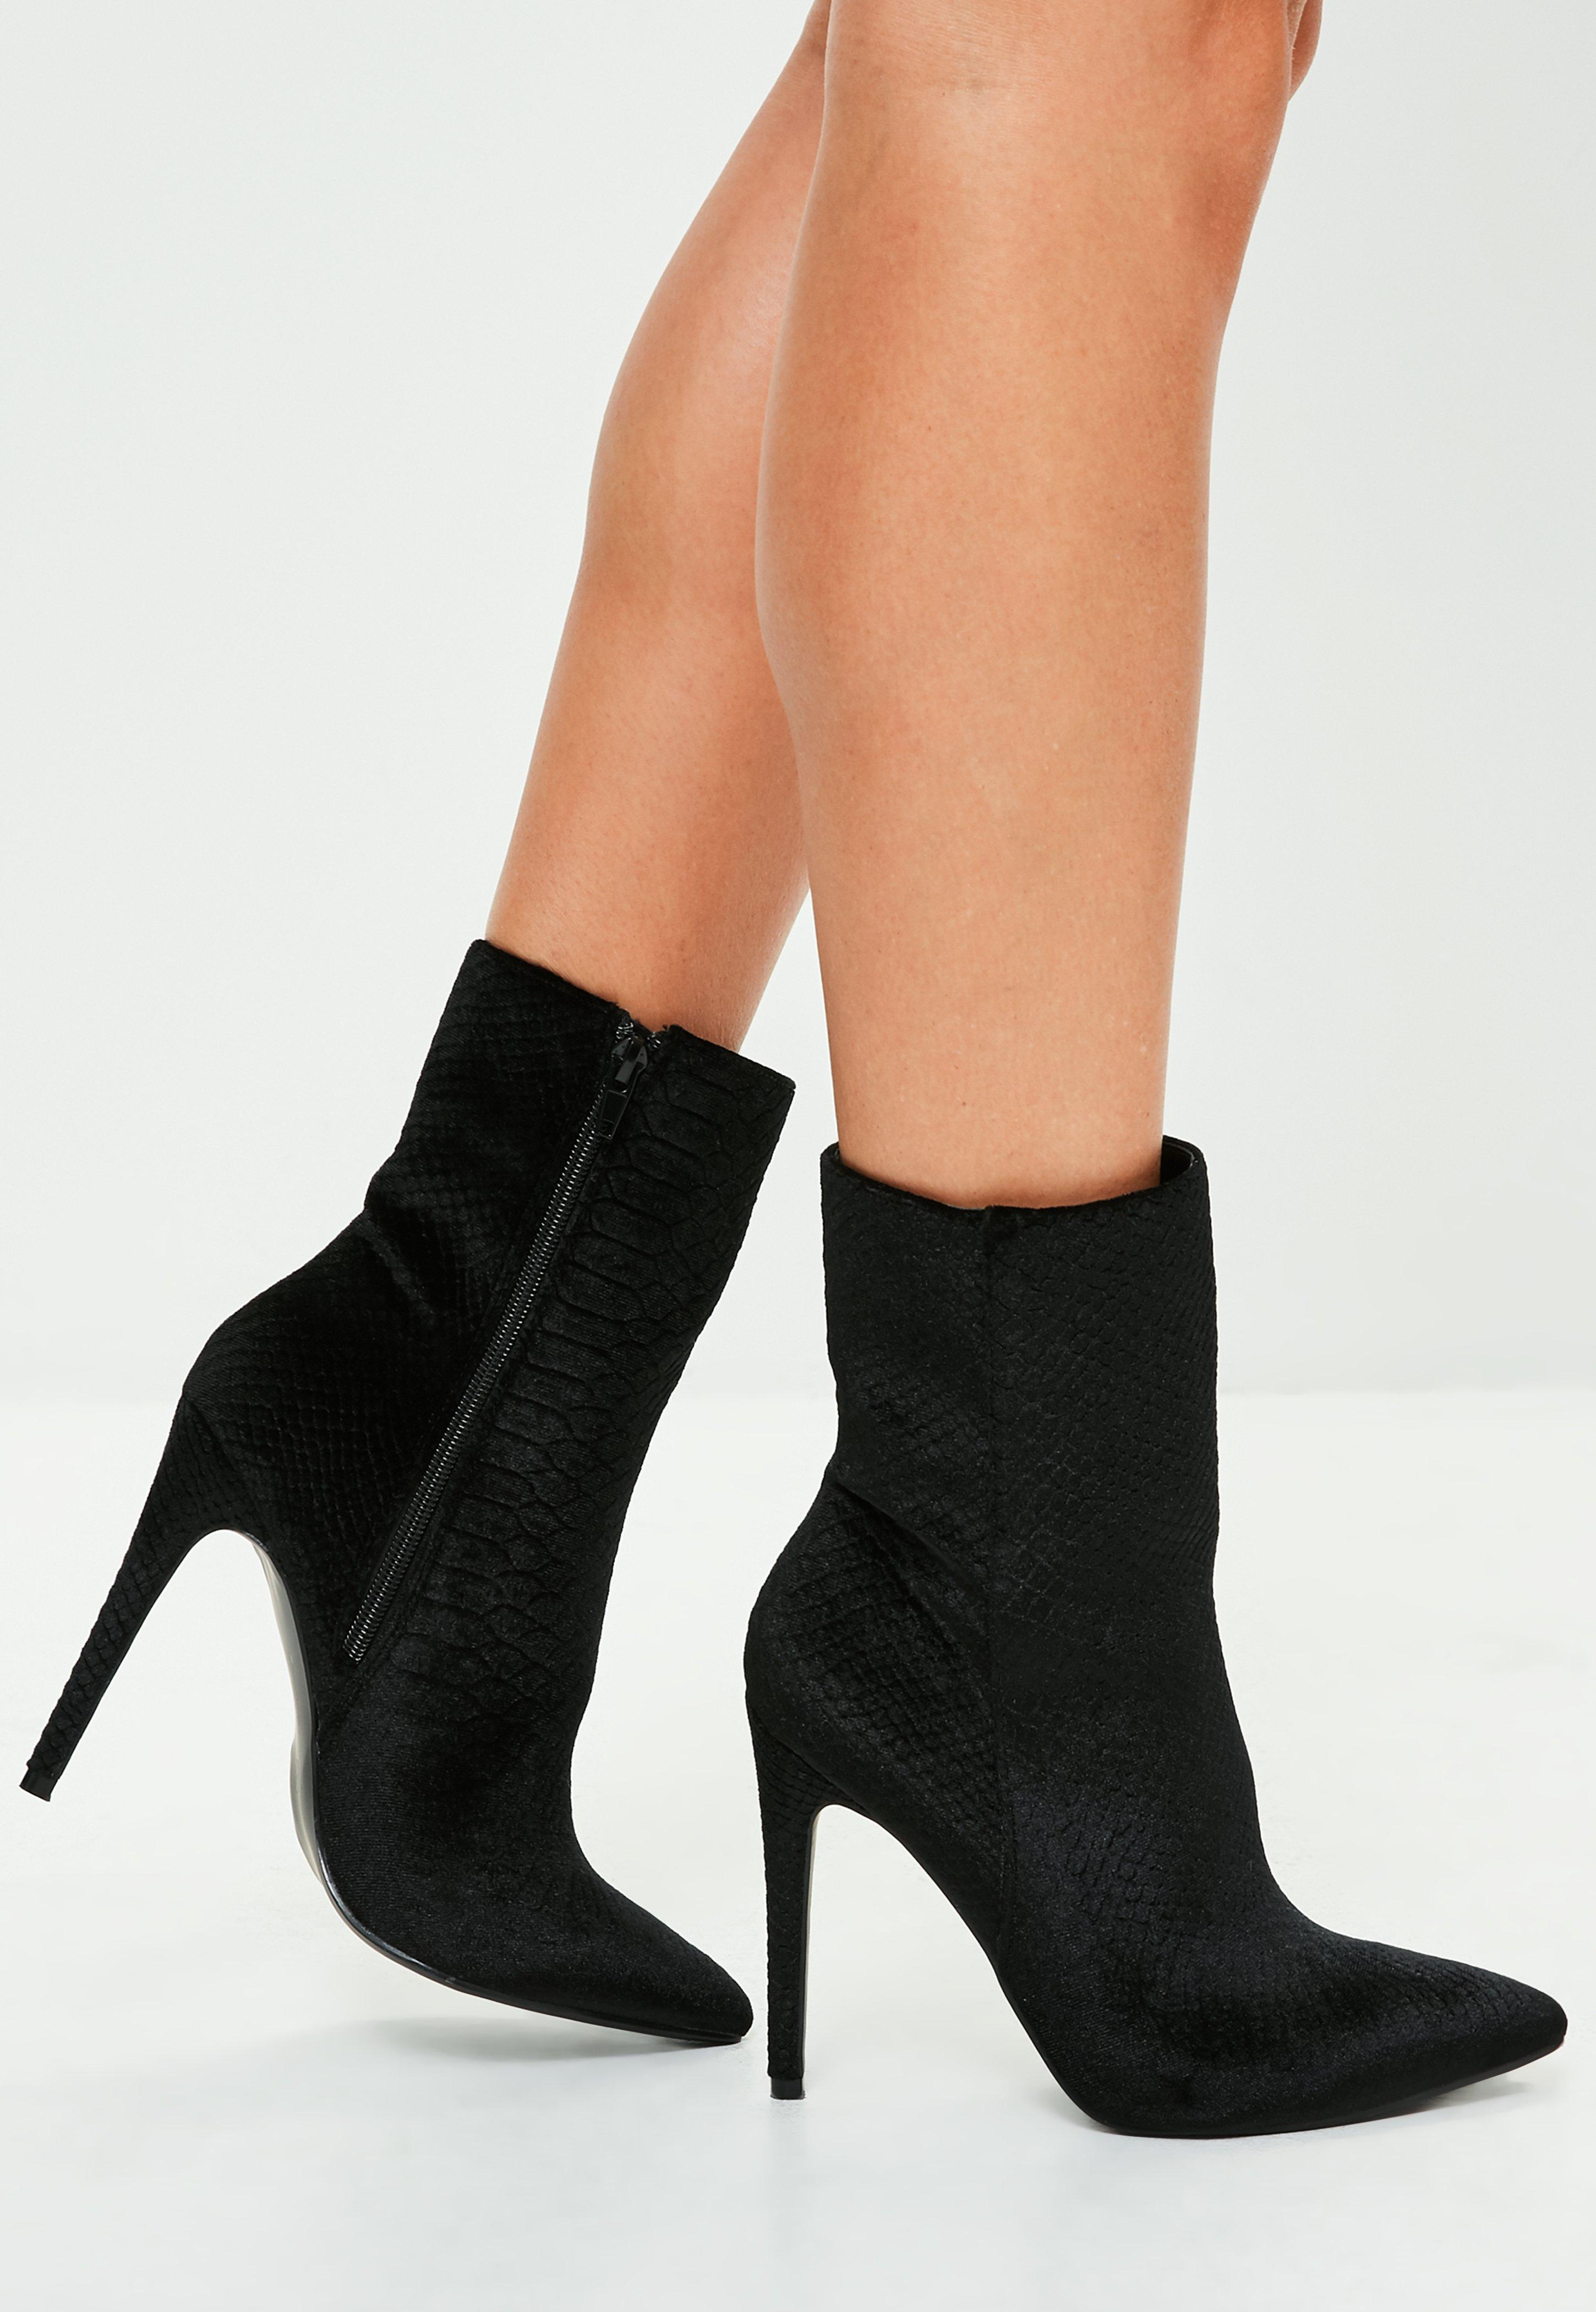 Boots Online | Women's Grey & Black Boots - Missguided